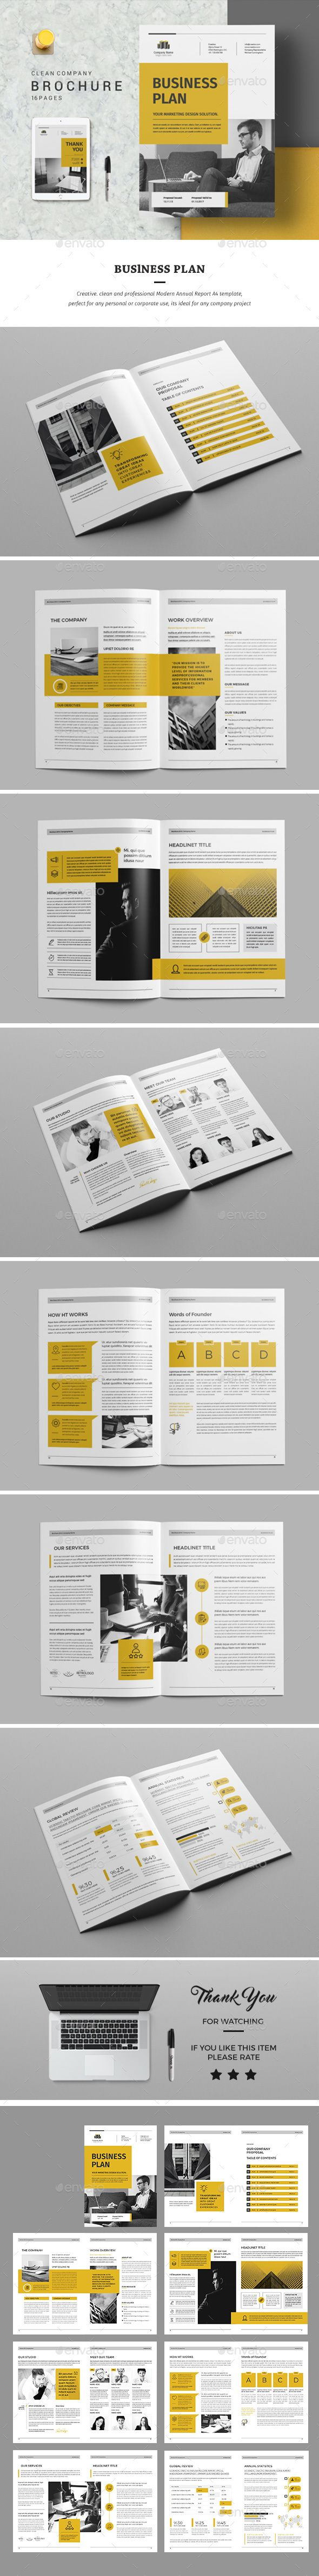 Business Plan — InDesign INDD #elegant #design • Download ➝ https://graphicriver.net/item/business-plan/19521662?ref=pxcr